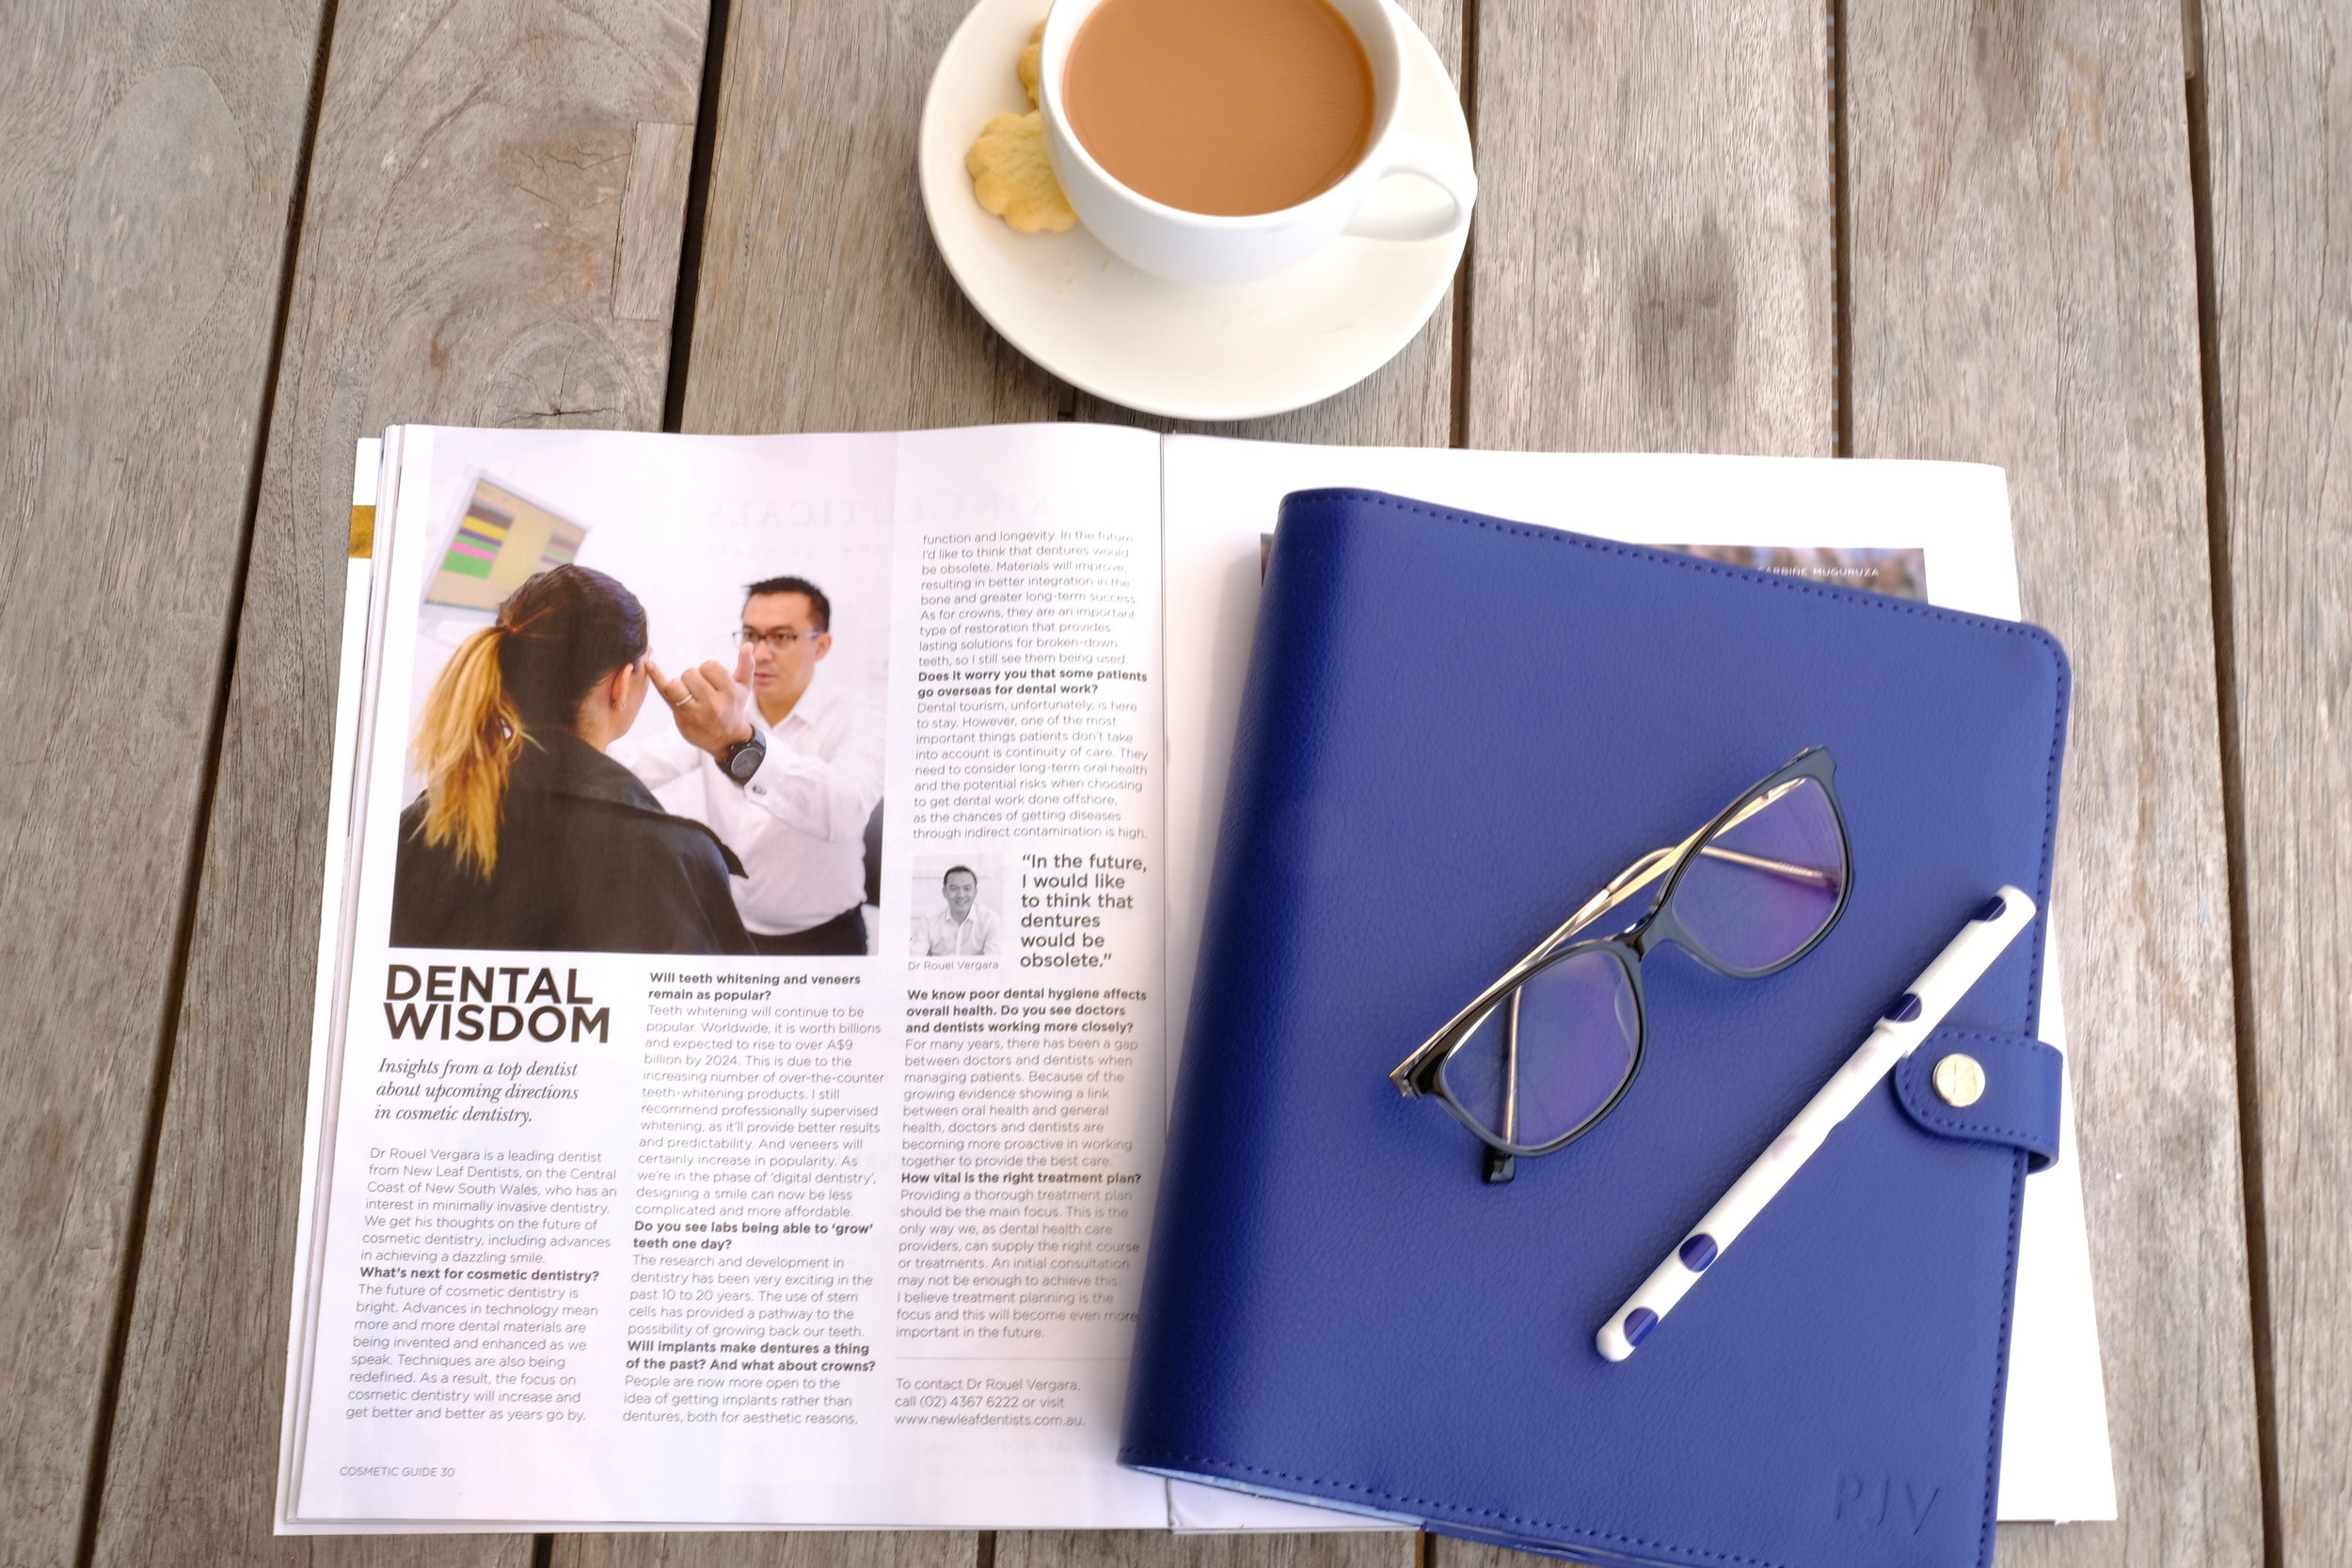 Read Dr. Vergara's interview on page 30 of the cosmetic guide. Here, he talks about his thoughts on the future of cosmetic dentistry.